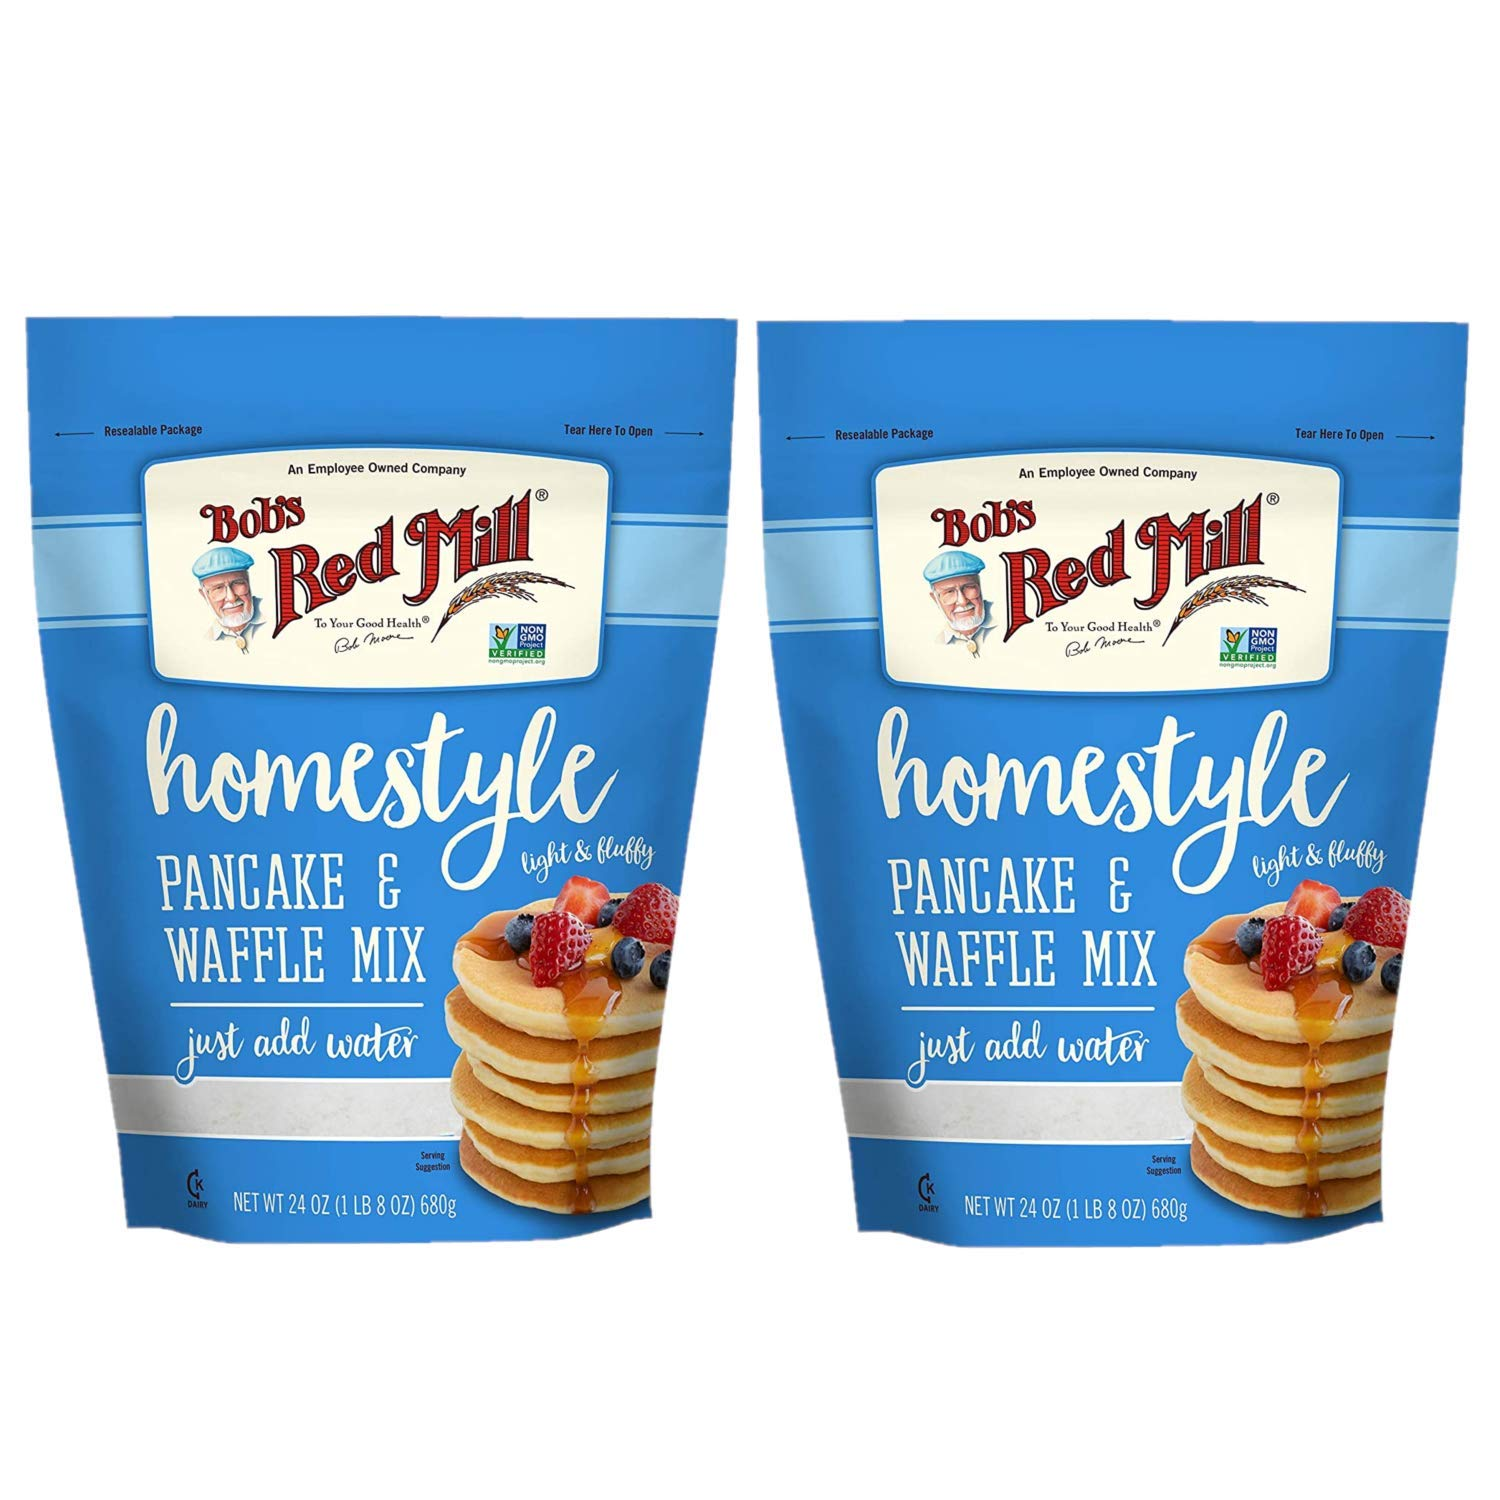 Bob's Red Mill Homestyle Pancake and Waffle Mix 24 oz (Two Pack, 48 oz Total - Instant, Easy to Use Fluffy Pancake Mix - Just Add Water - Two Pack Pancake and Waffle Mix (Two 24 oz Resealable Bags)